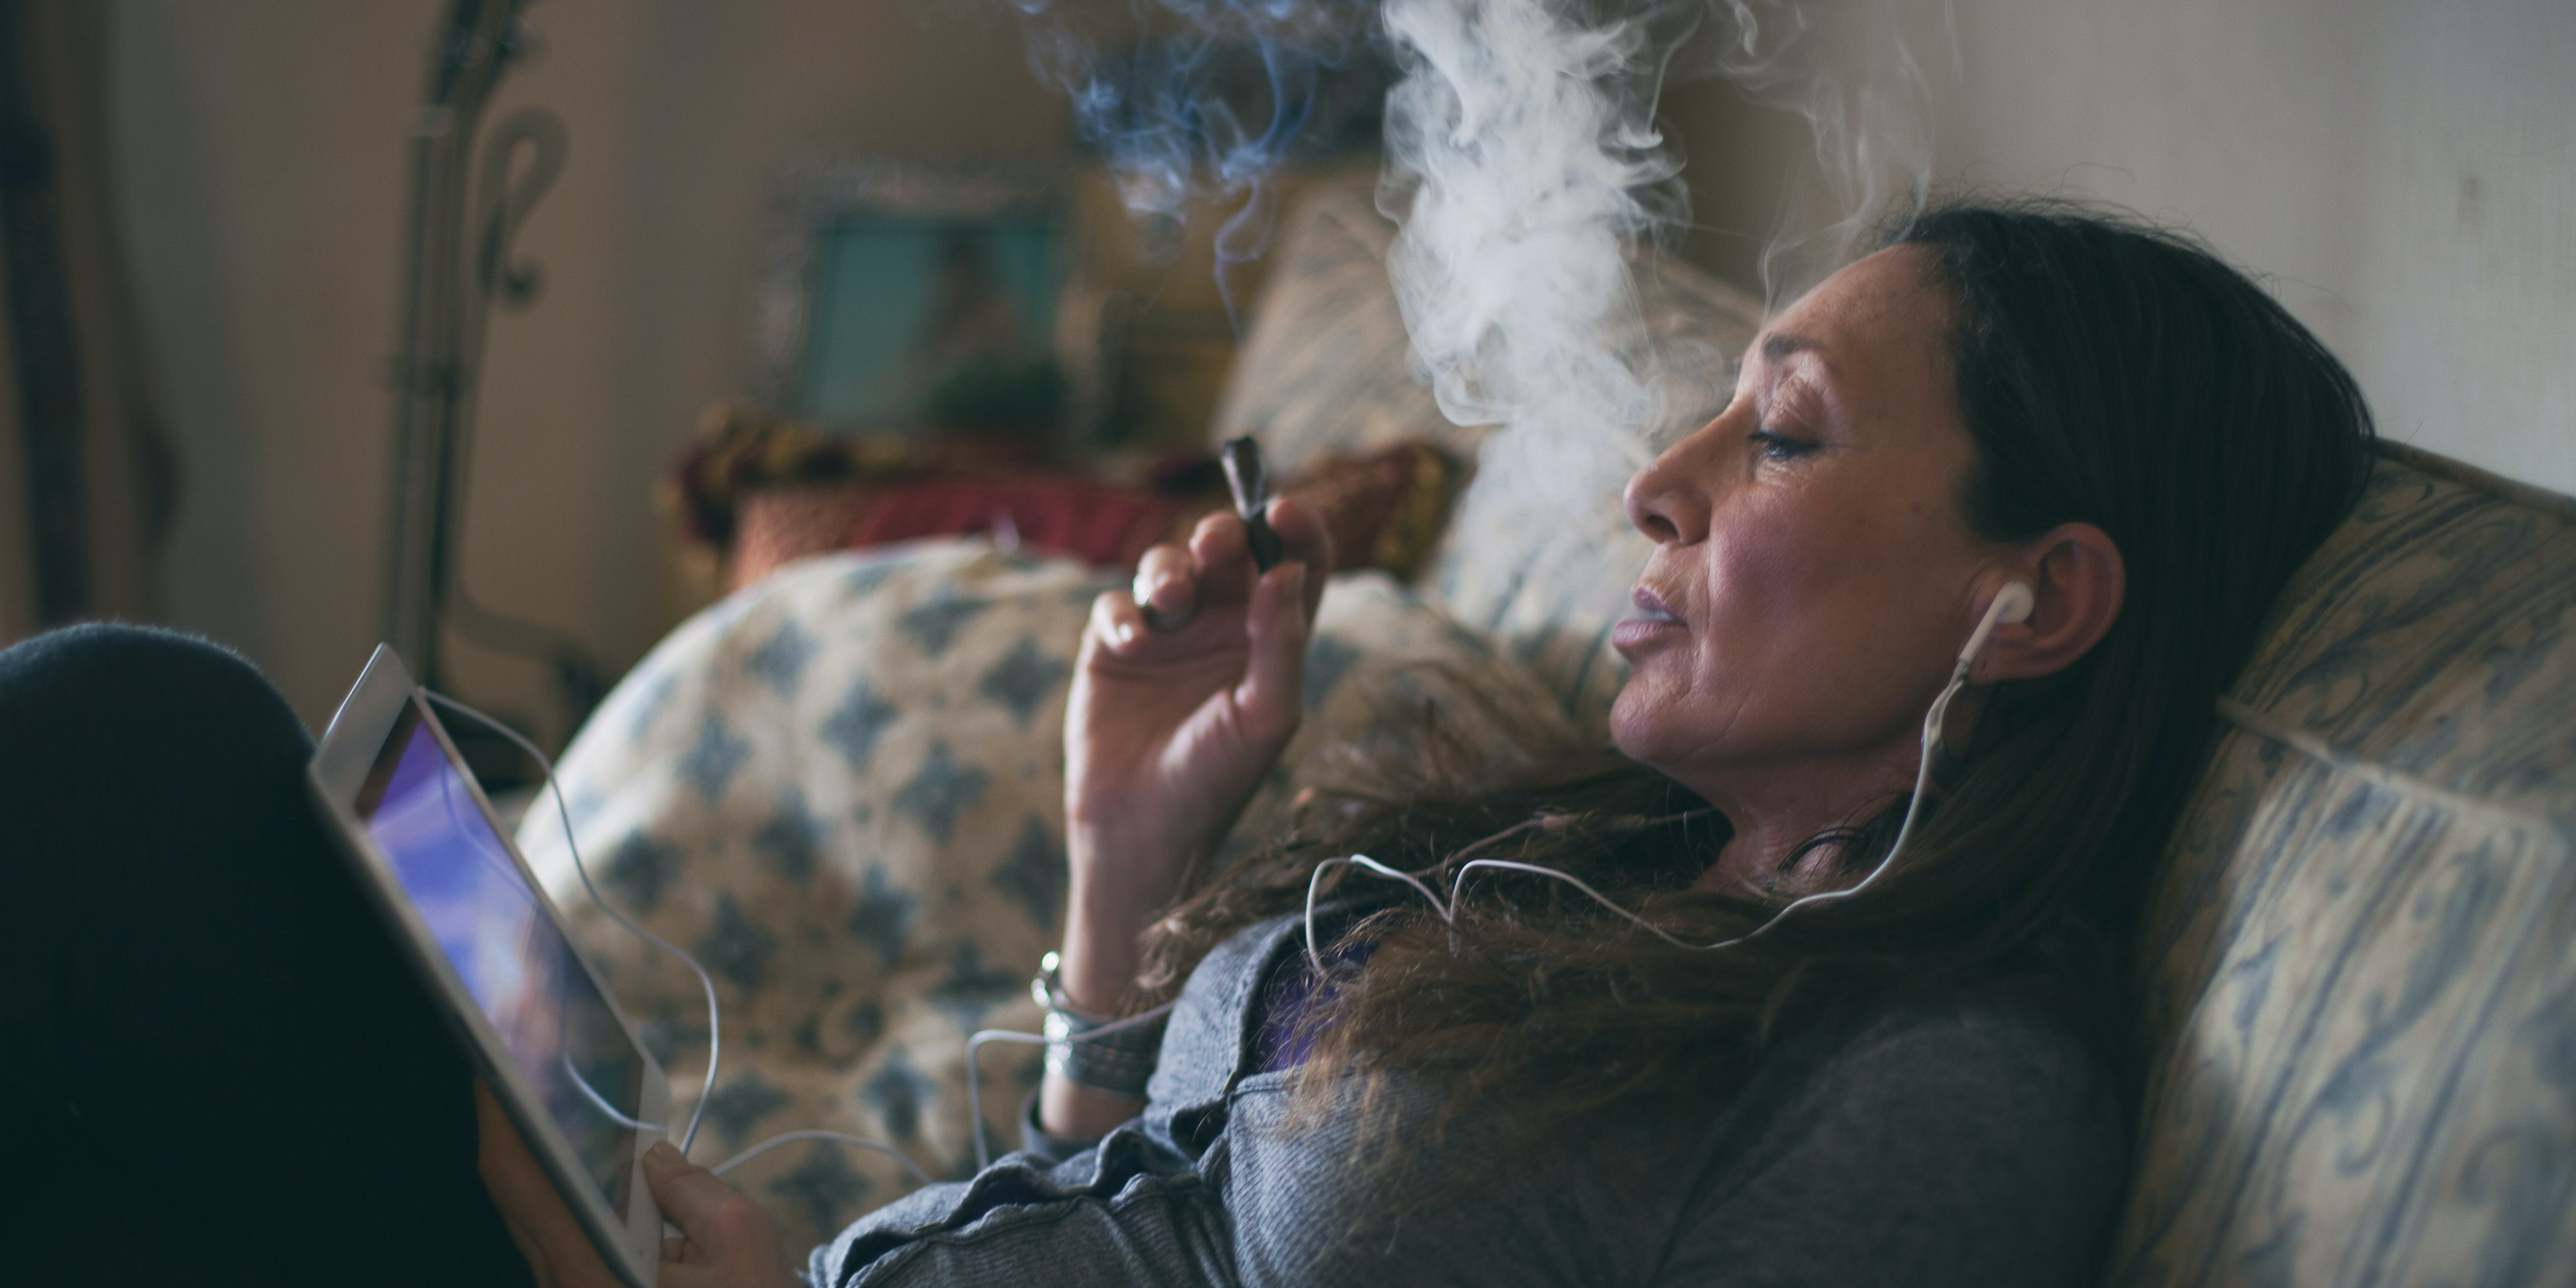 Woman relaxing on a couch, smoking a cigar and watching a video on a tablet. These are essentials for parents who smoke weed.